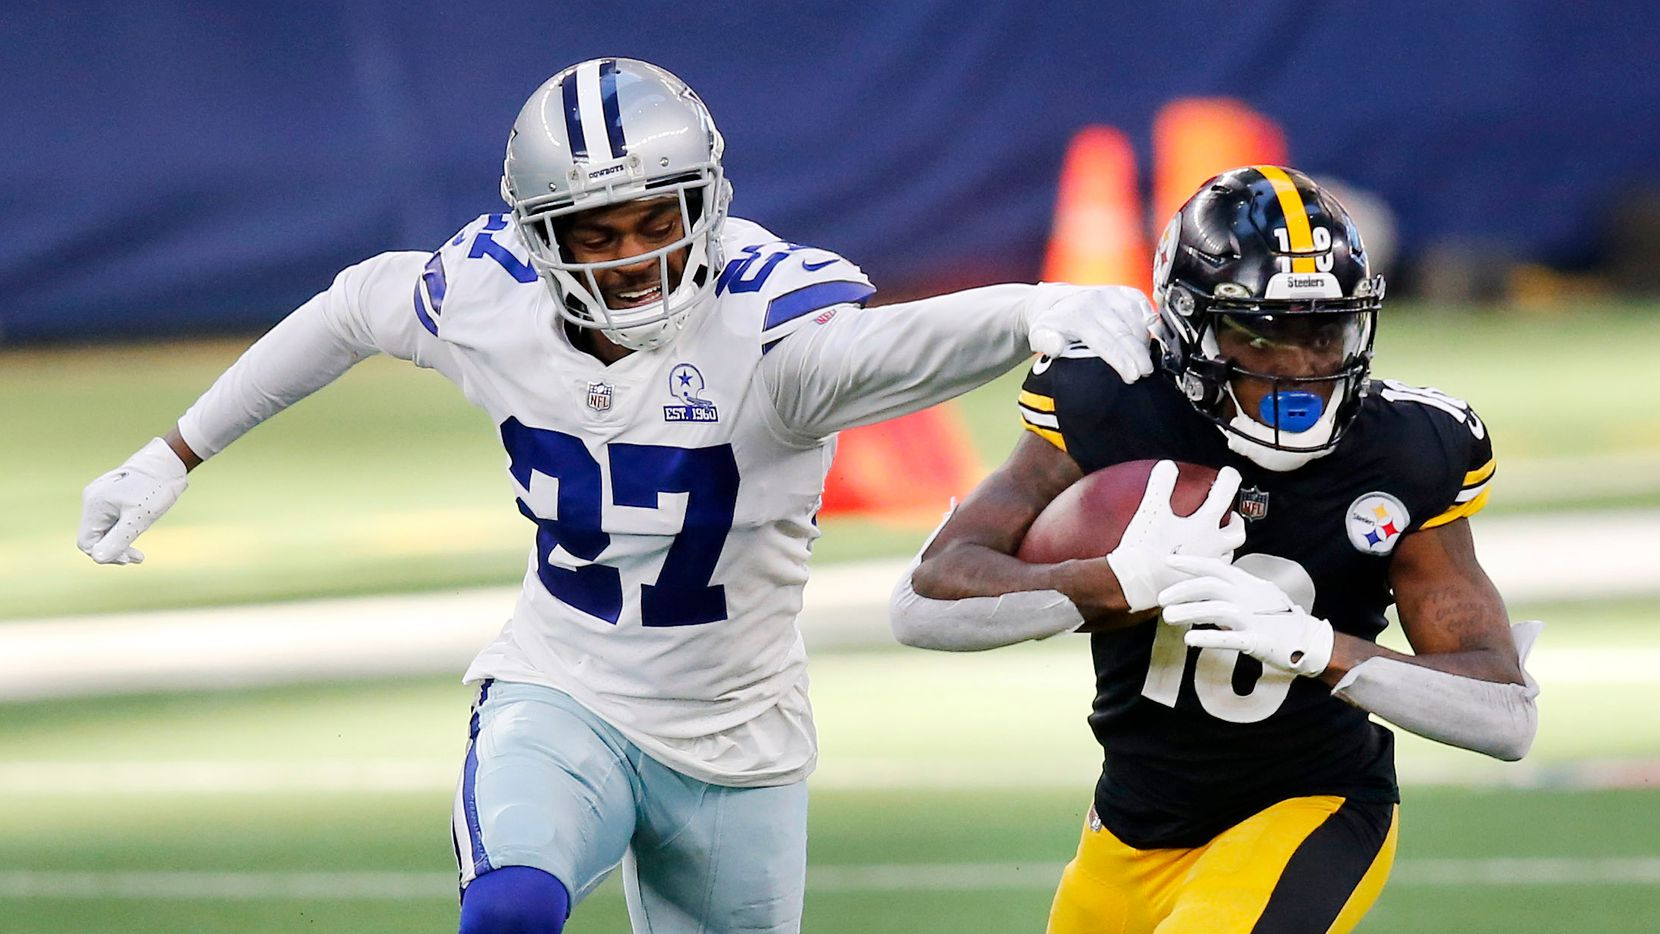 Dallas Cowboys cornerback Trevon Diggs (27) misses a tackle of Pittsburgh Steelers wide receiver Diontae Johnson (18) during the second quarter at AT&T Stadium in Arlington, Texas Sunday, November 8, 2020.